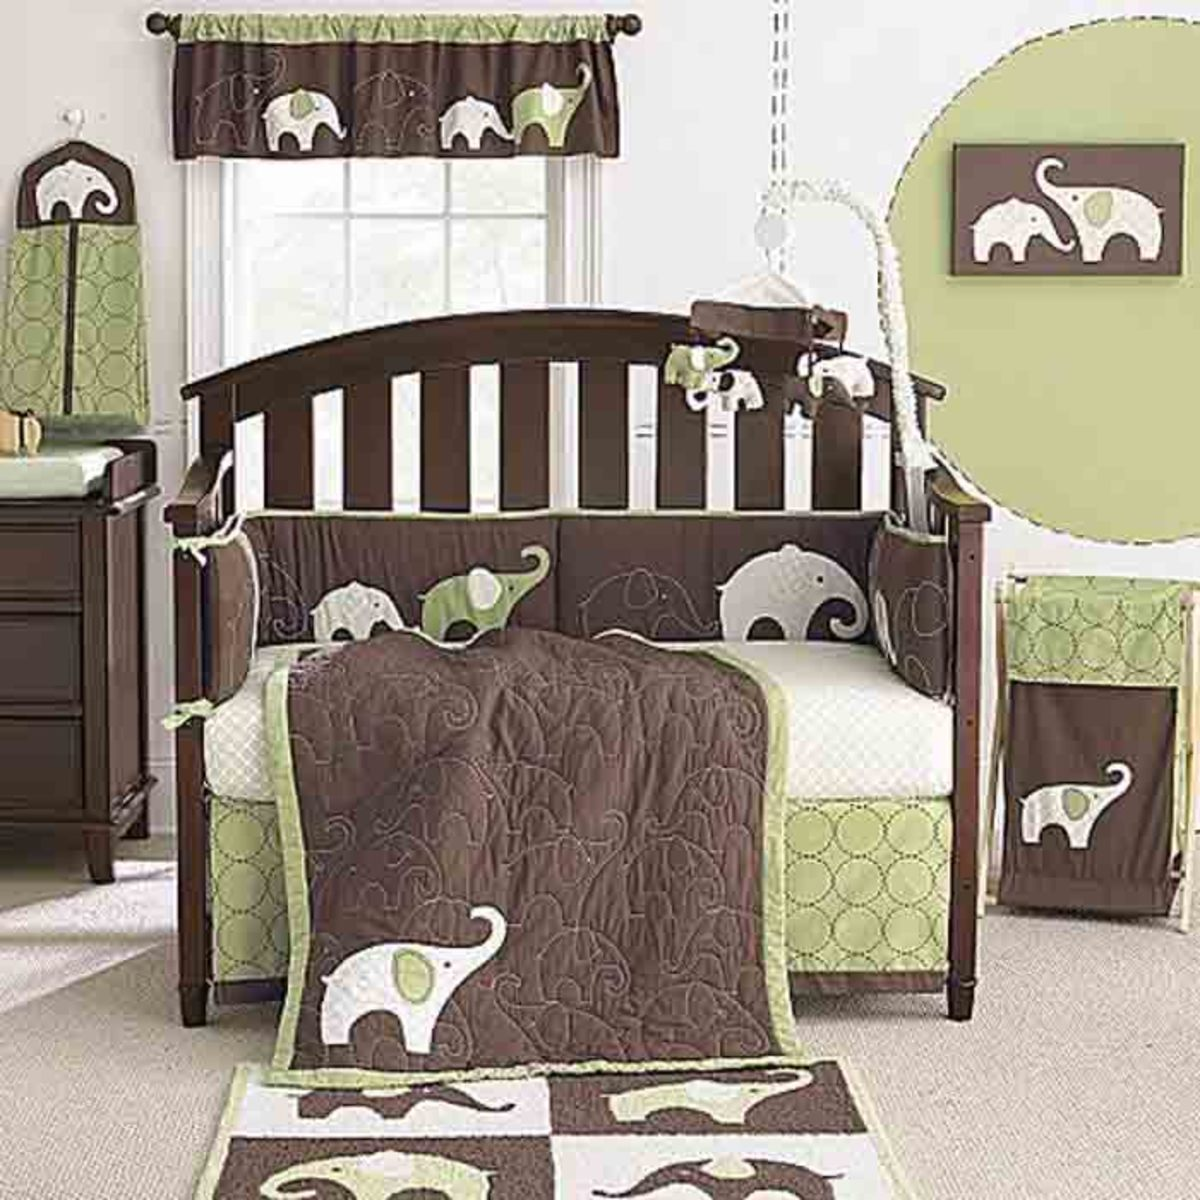 Baby Boy Nursery Themes: Decorating Ideas For A Baby Boy Nursery